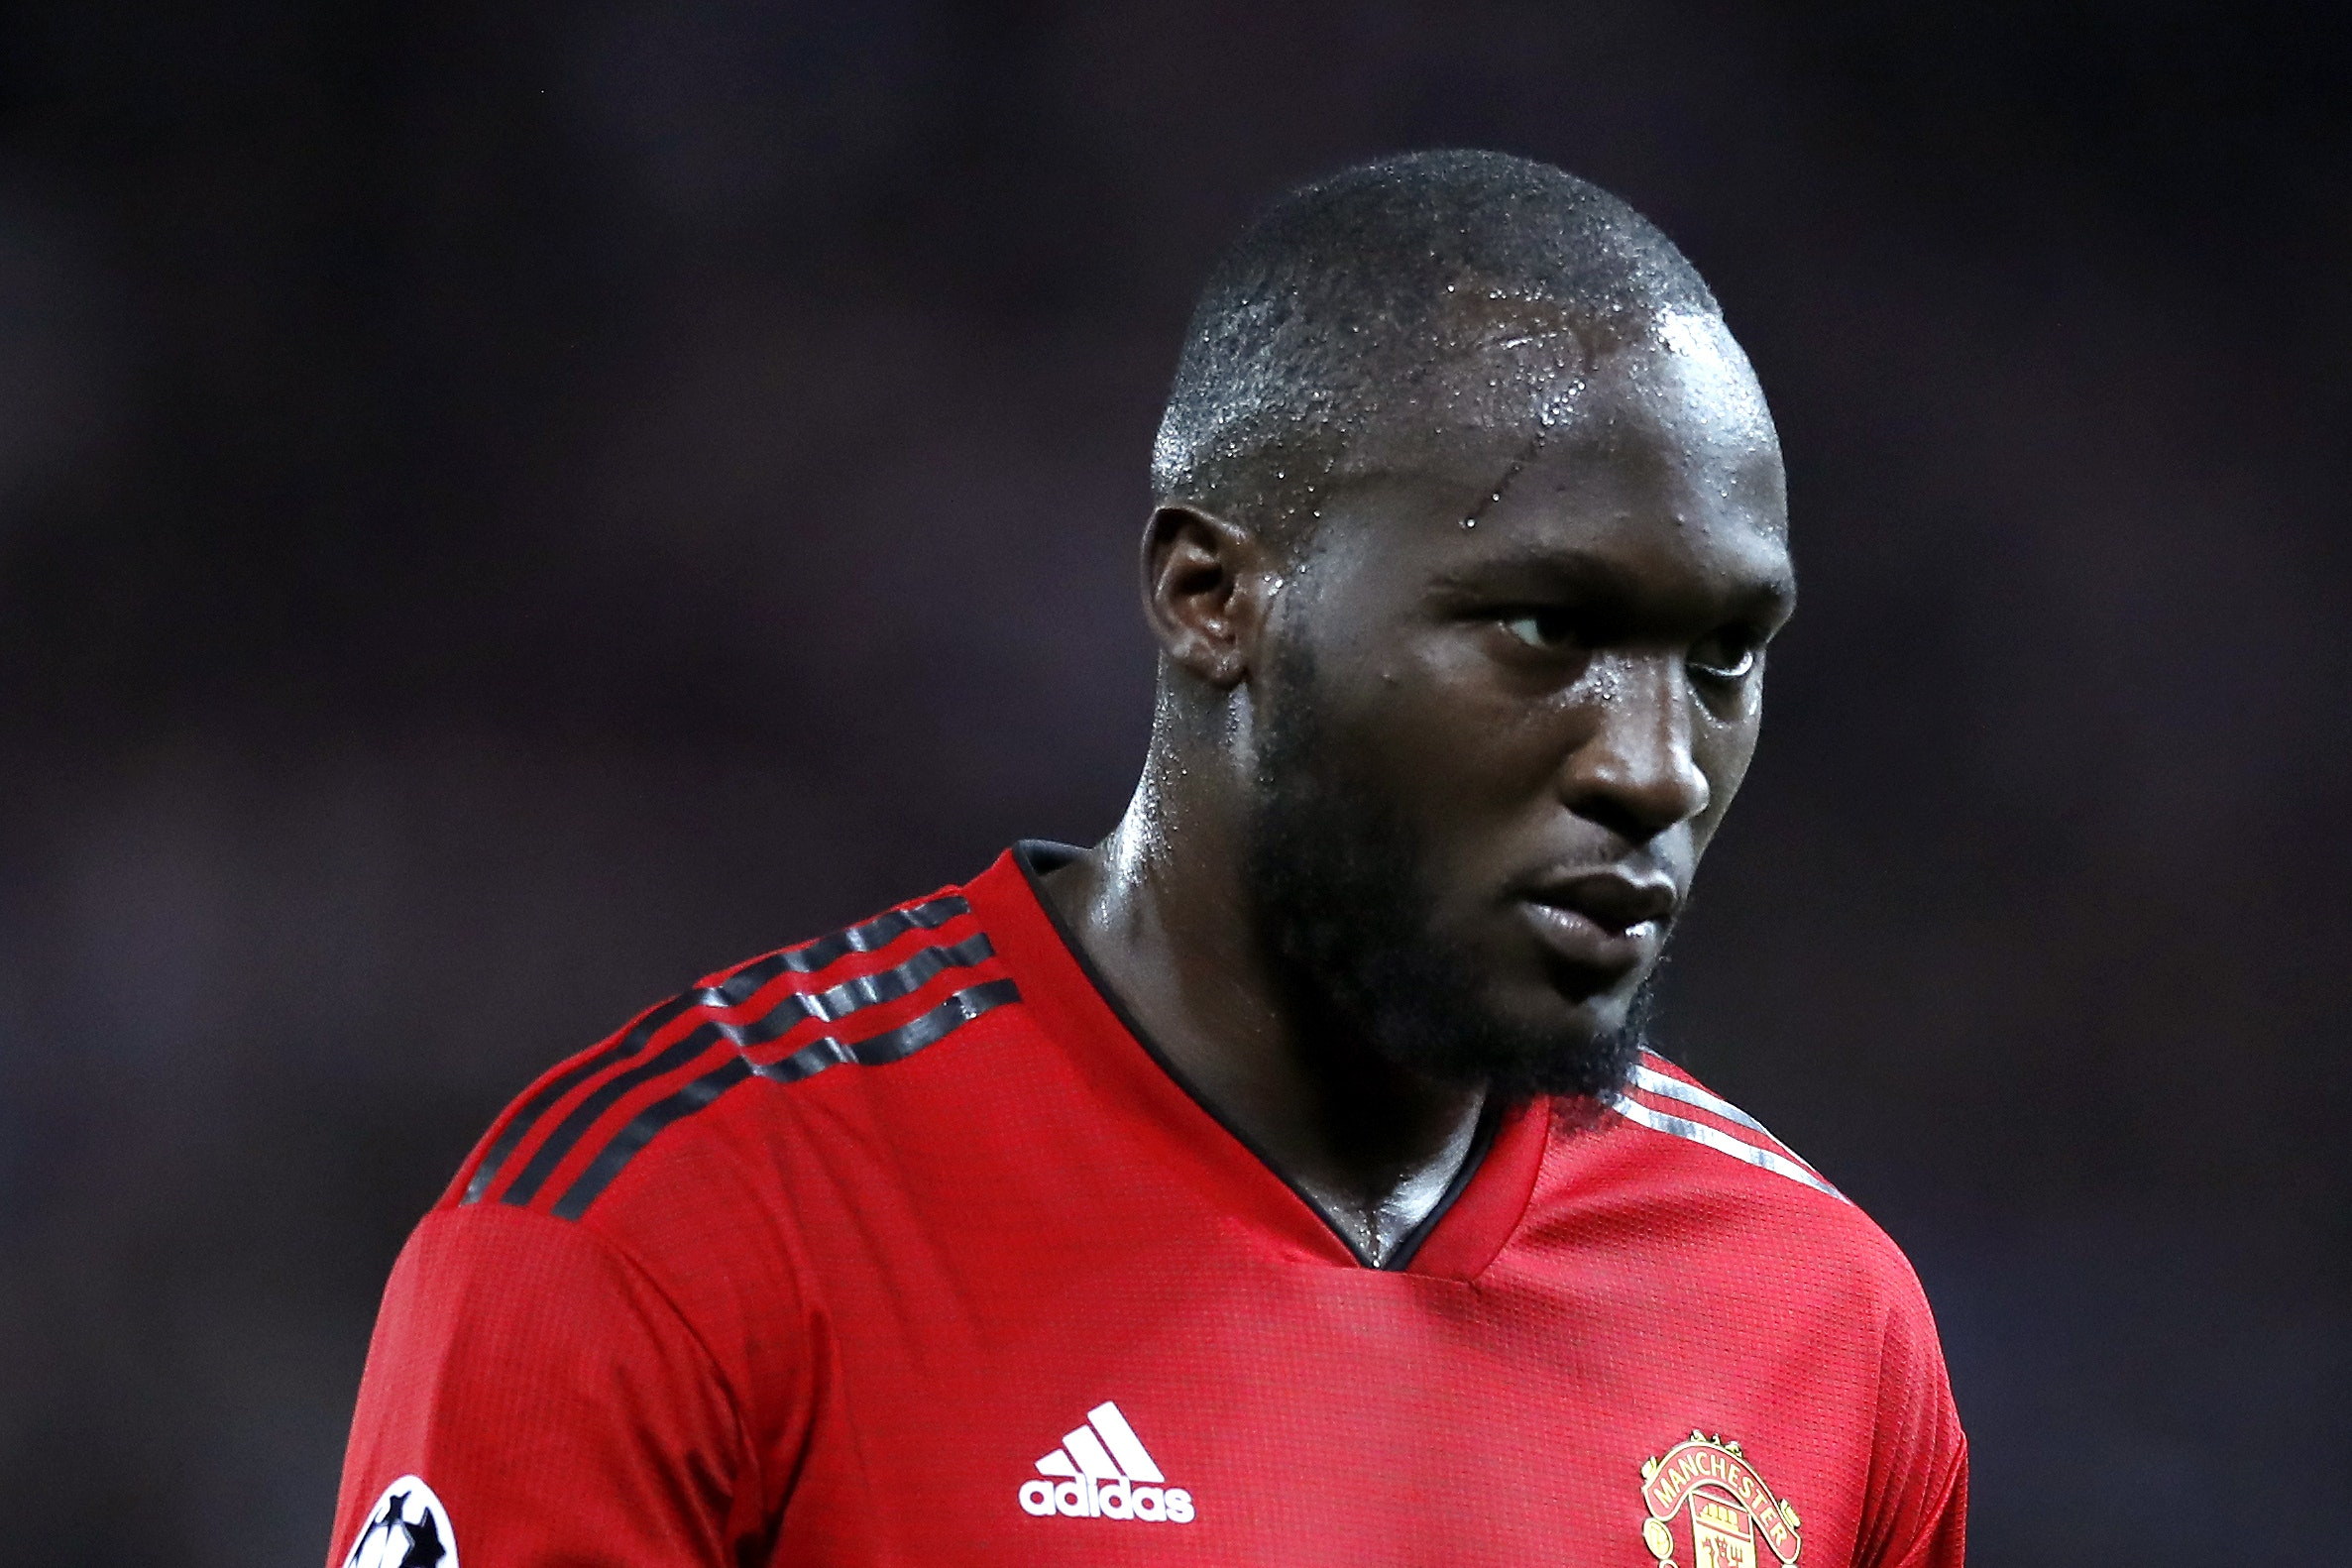 Manchester United striker Romelu Lukaku is suffering from a foot injury